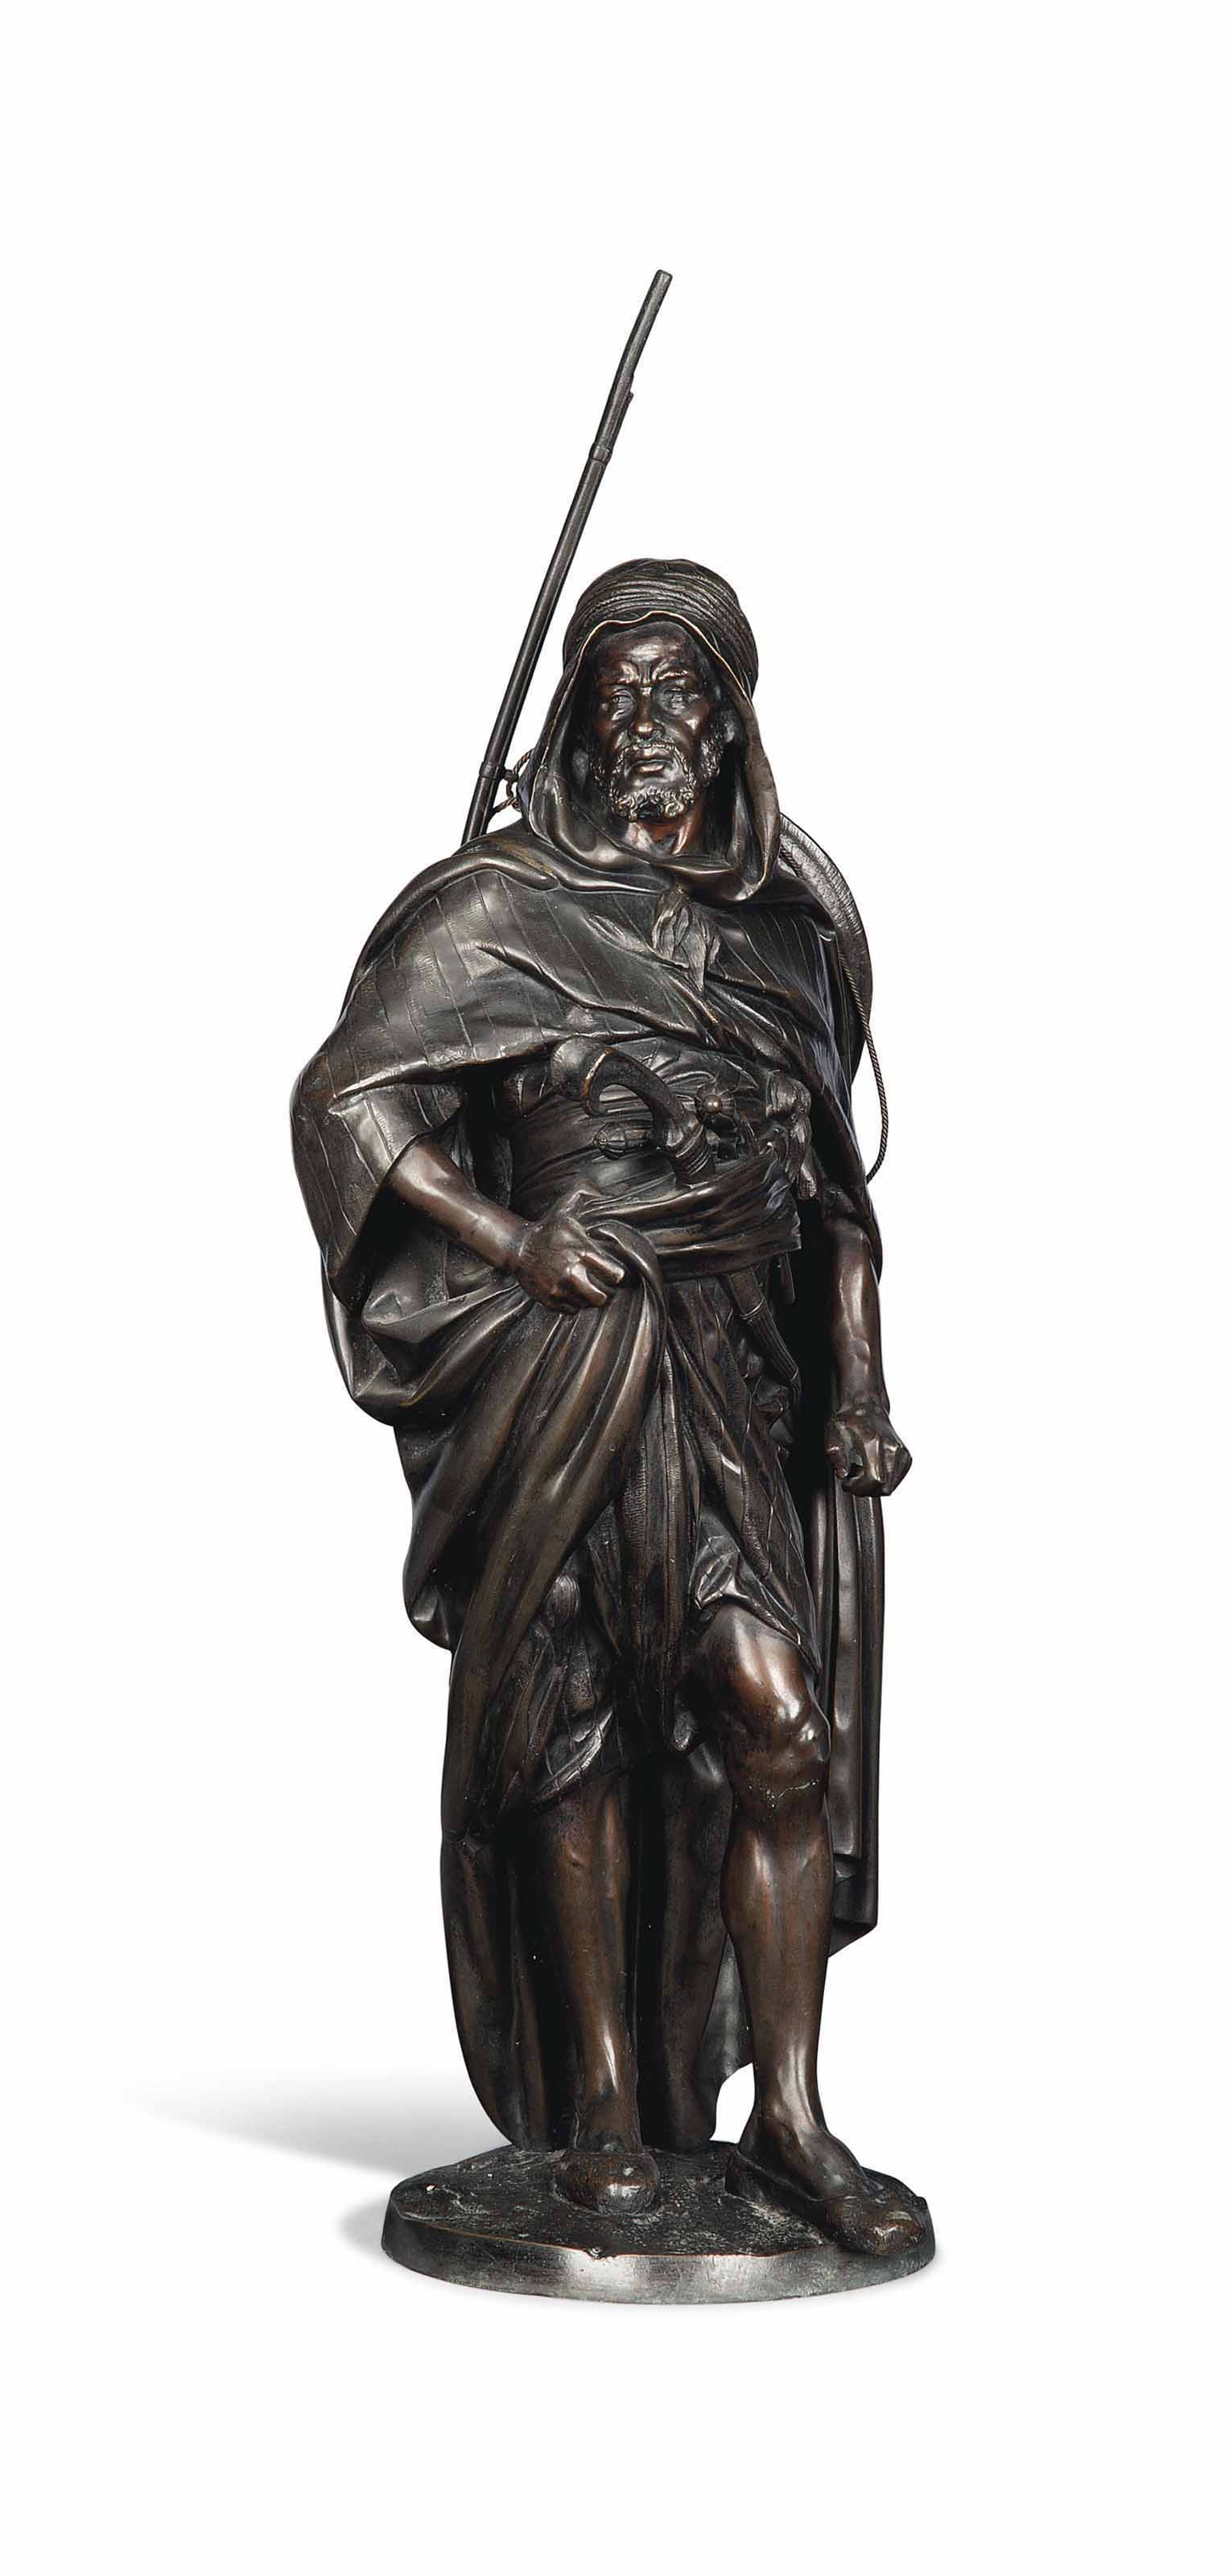 A FRENCH BRONZE FIGURE OF AN ARAB WARRIOR